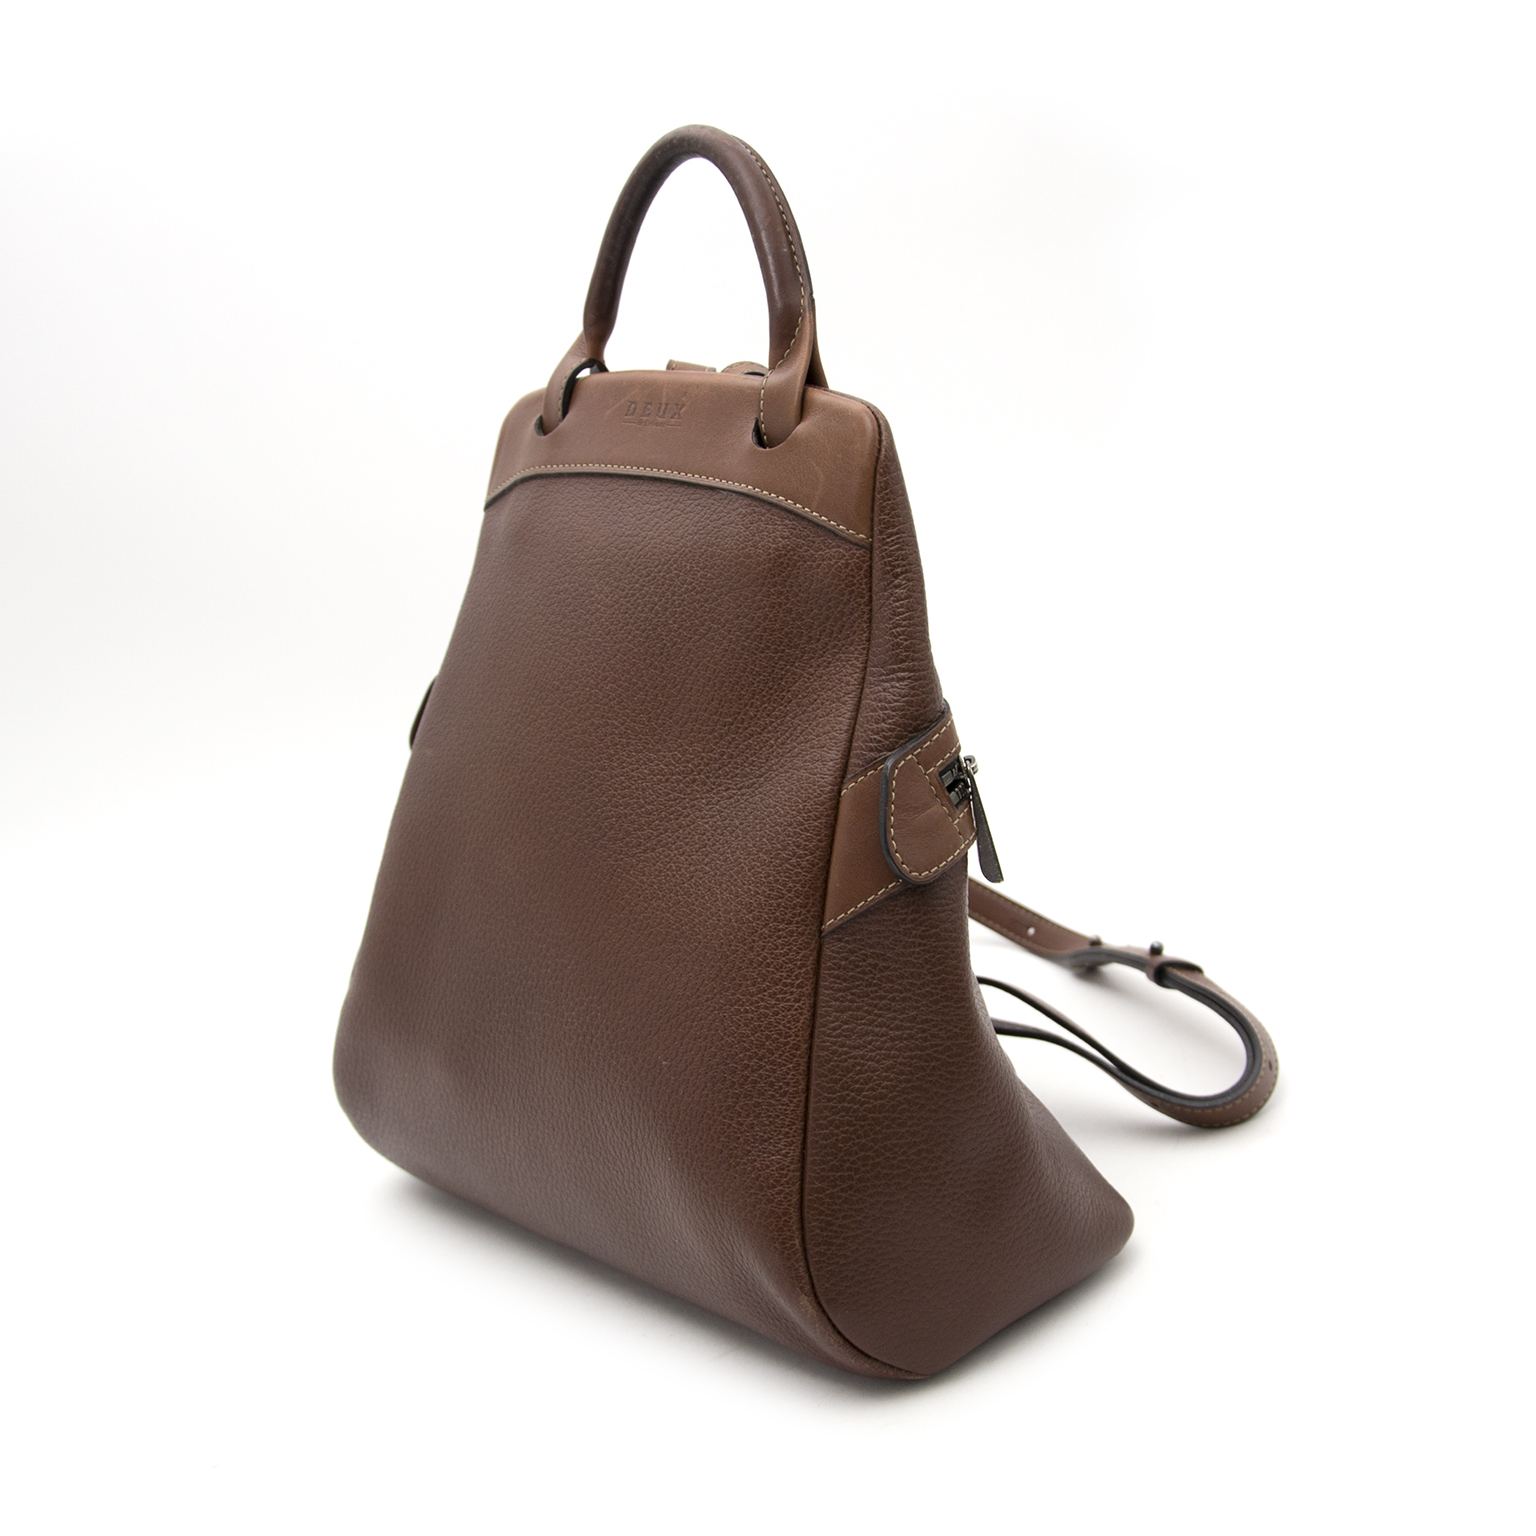 Buy safe and secure online at labellov.com Delvaux Bags For the best price